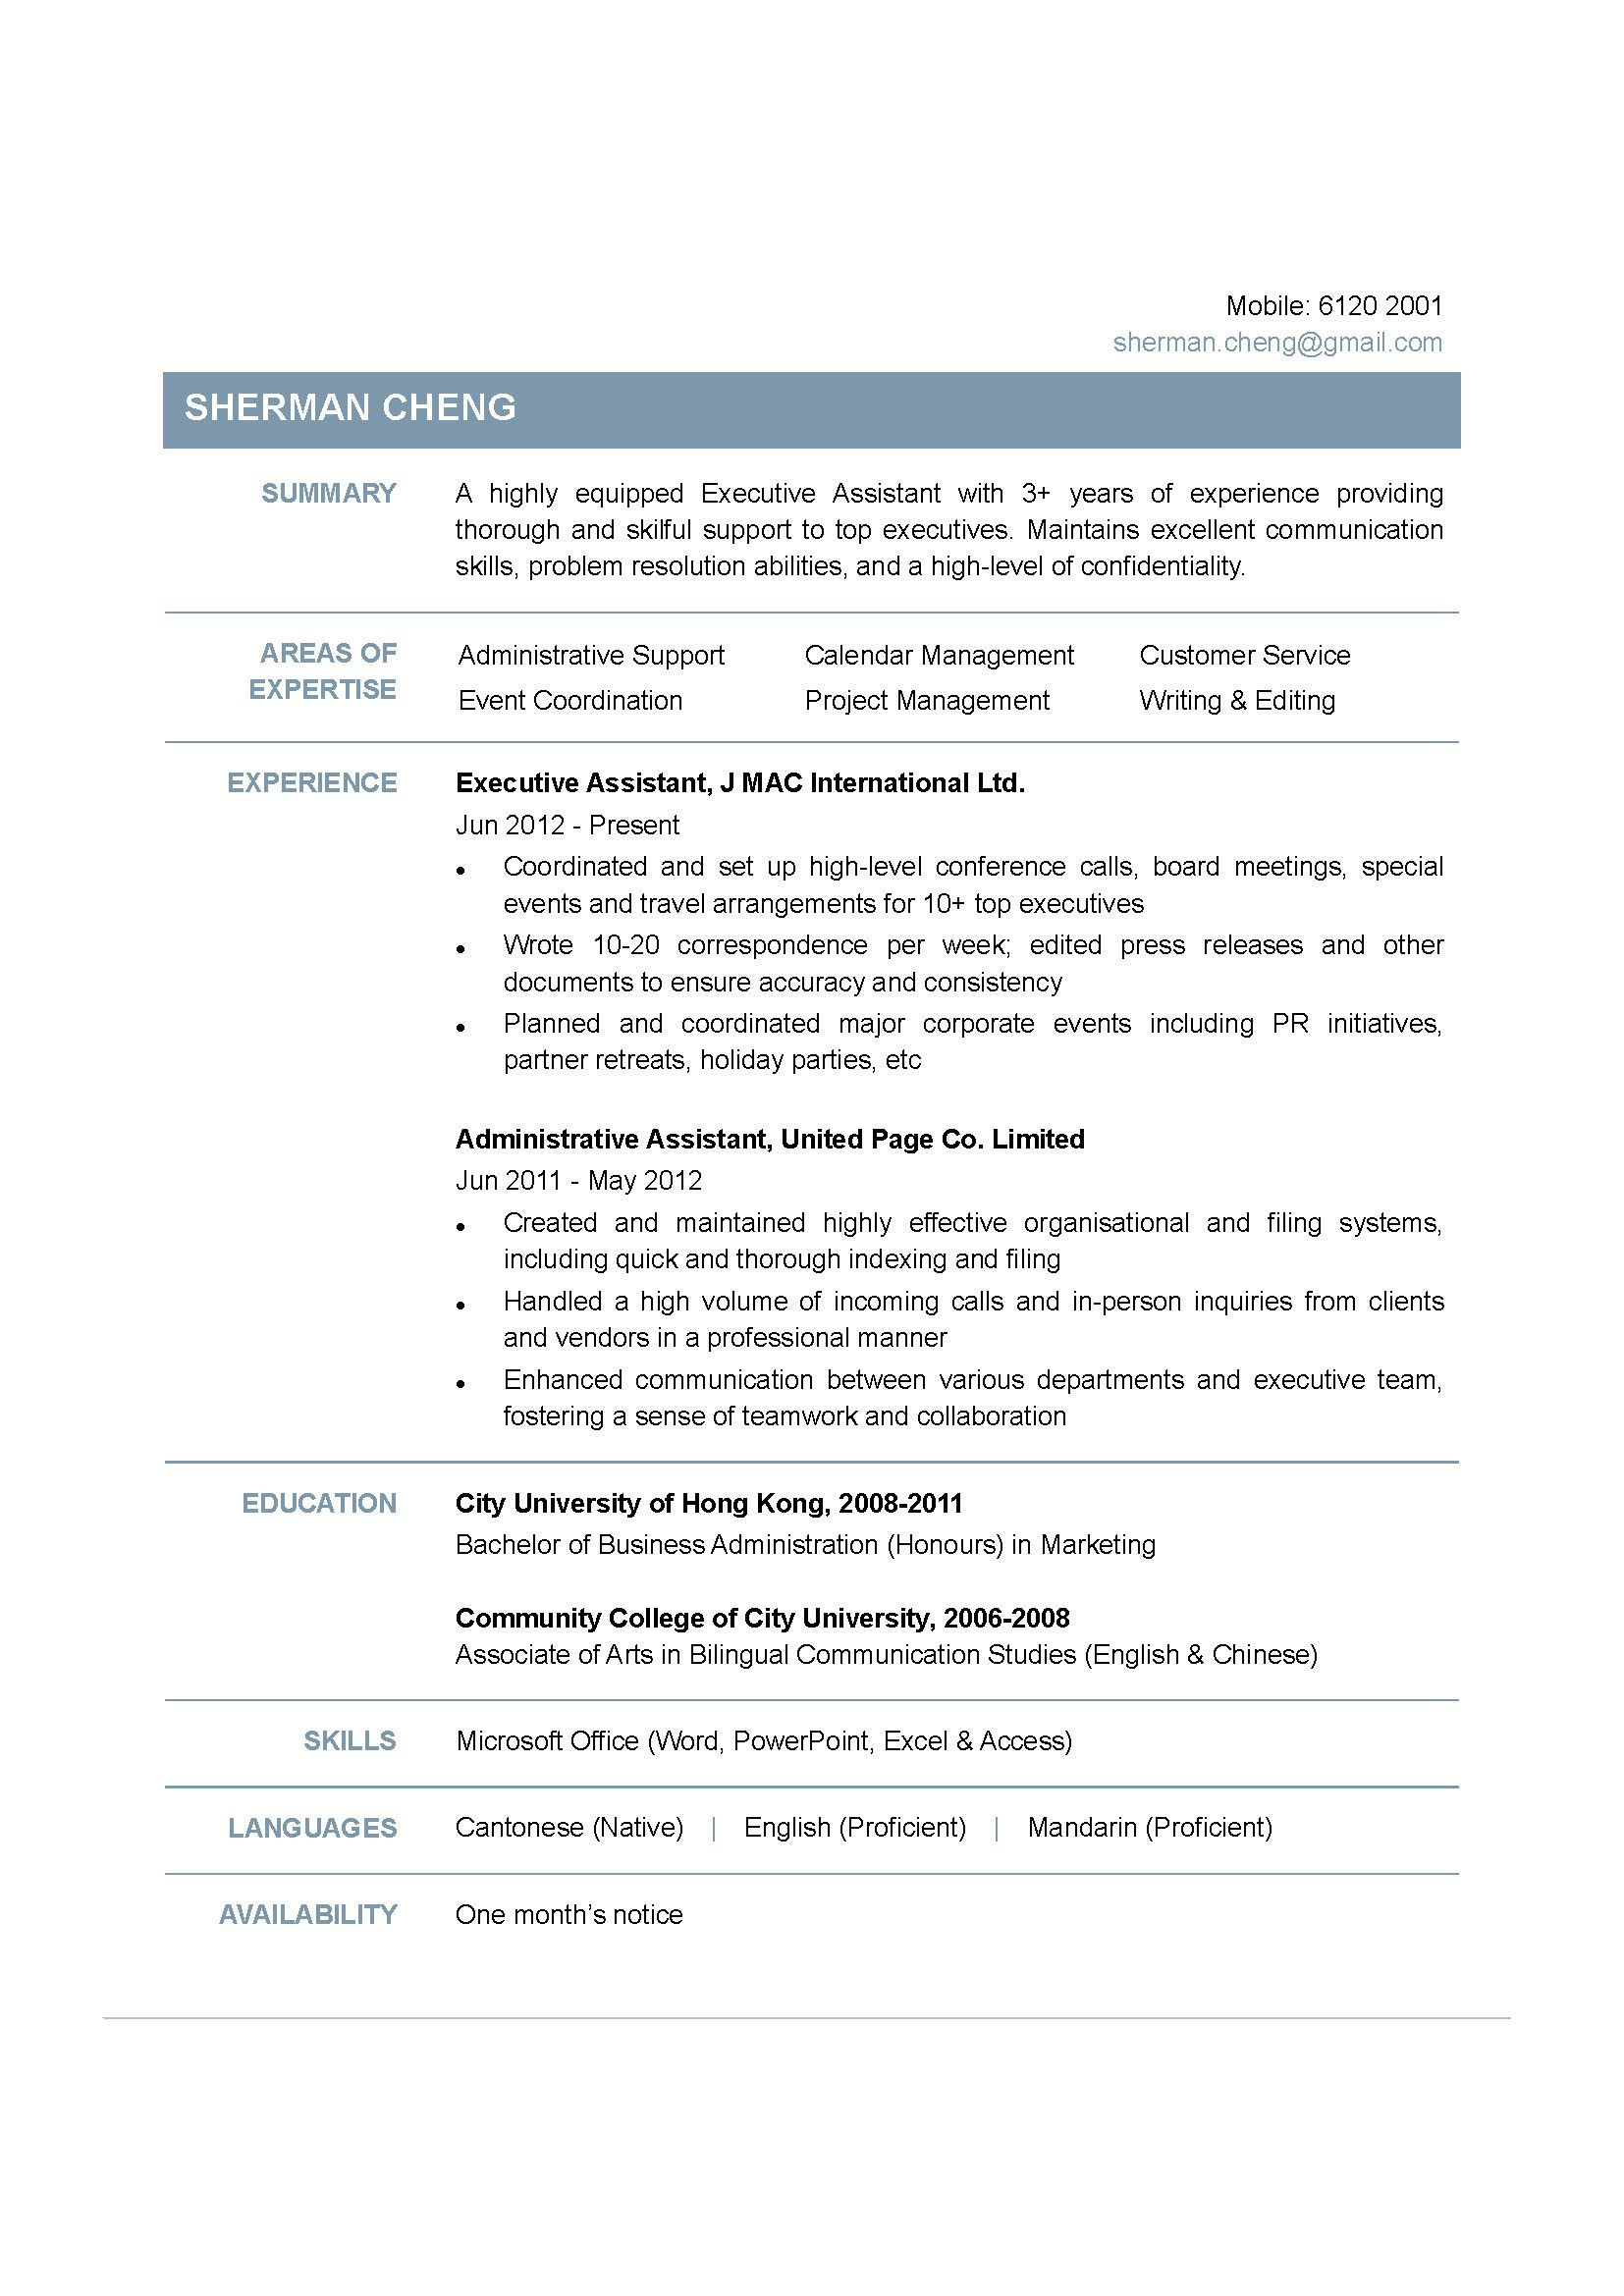 Simply resume the template Job interview Tips and Resume